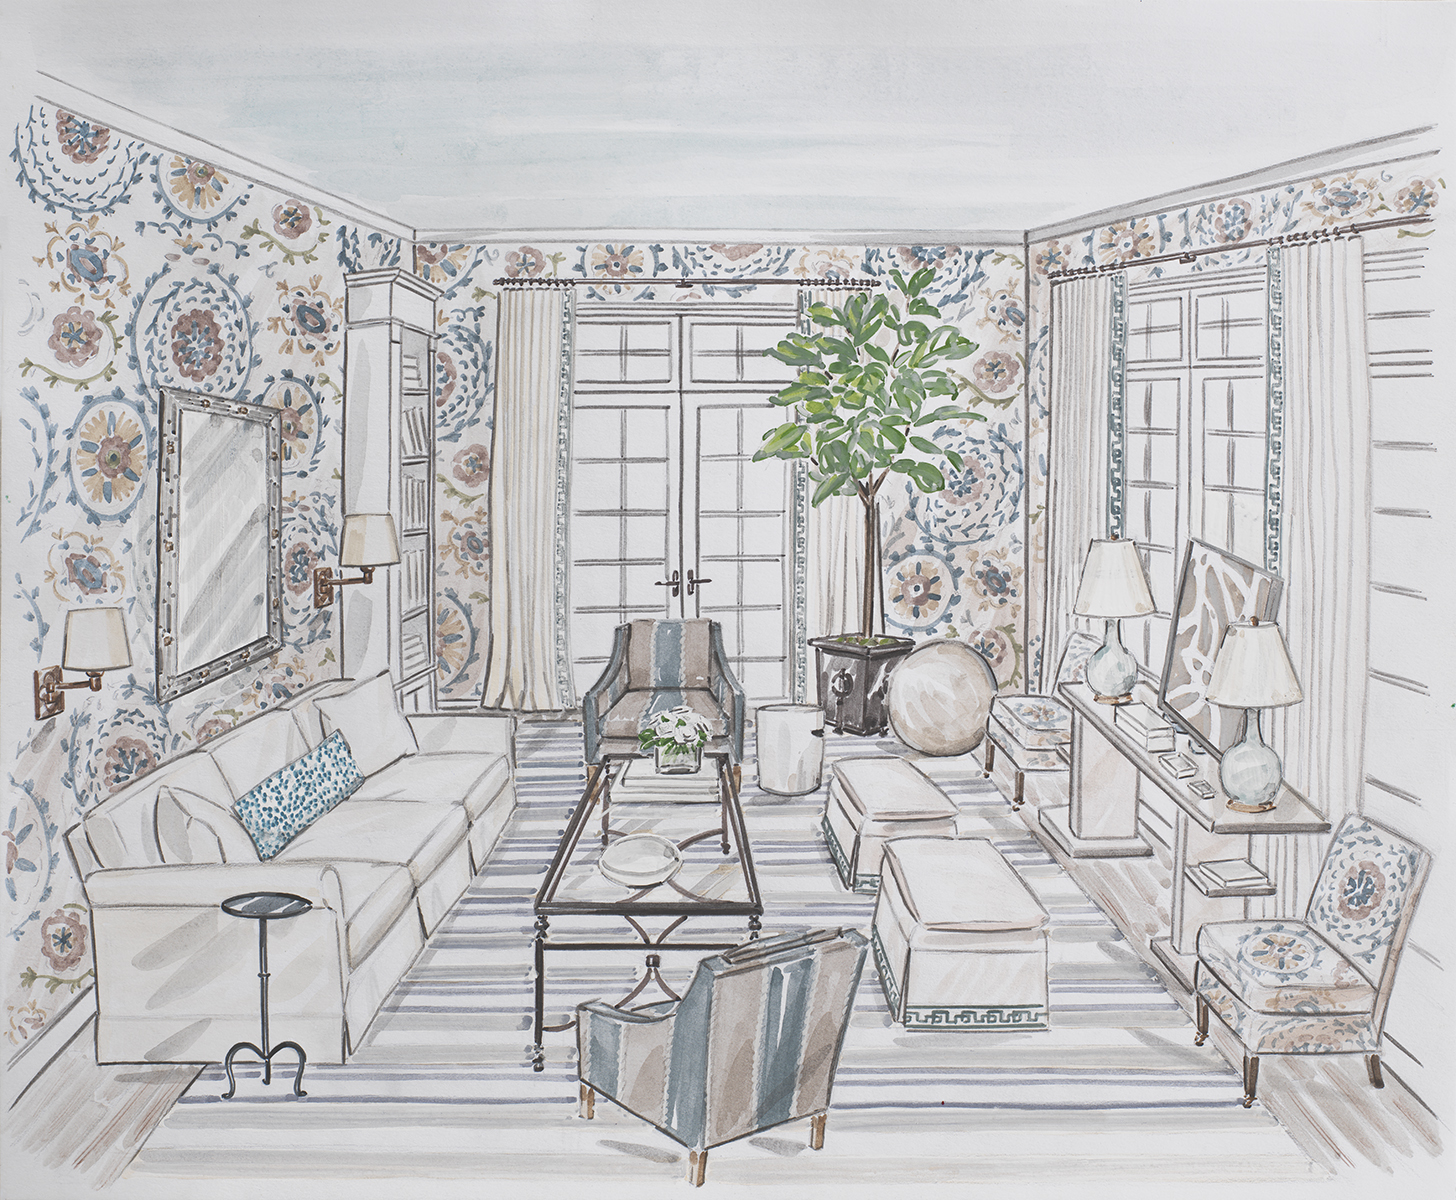 1 Suzanne Kasler rendering featured in House Beautiful.jpg